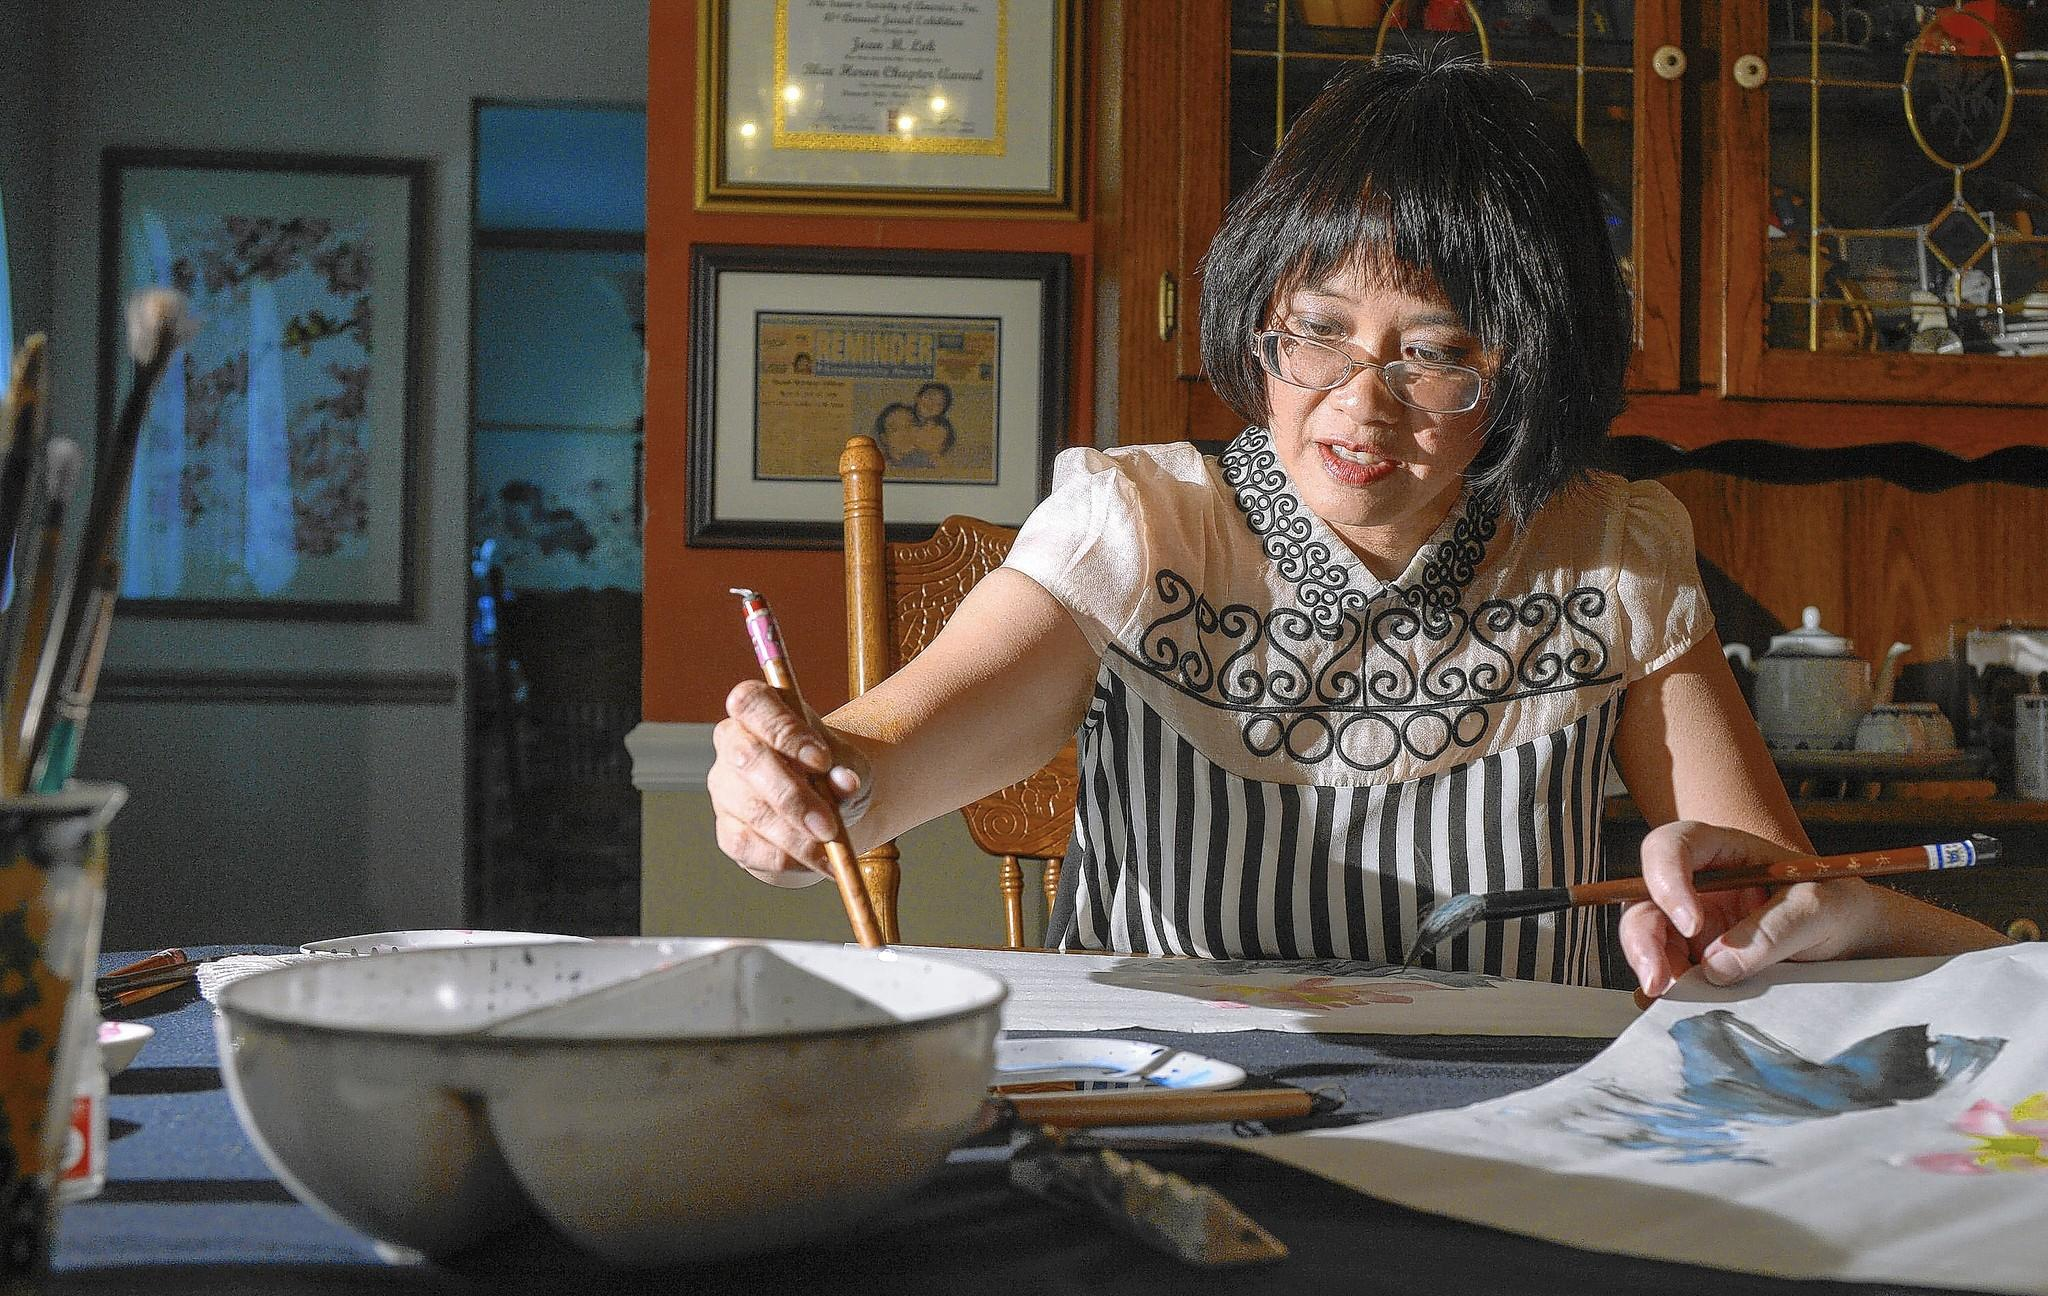 Joan Lok specializes in the art of Chinese brush painting. Barron's Educational Series Books has just published a book of her work and teachings that will come out Oct. 1. On Friday, September 12, she works with a student at her dining room table in Columbia.